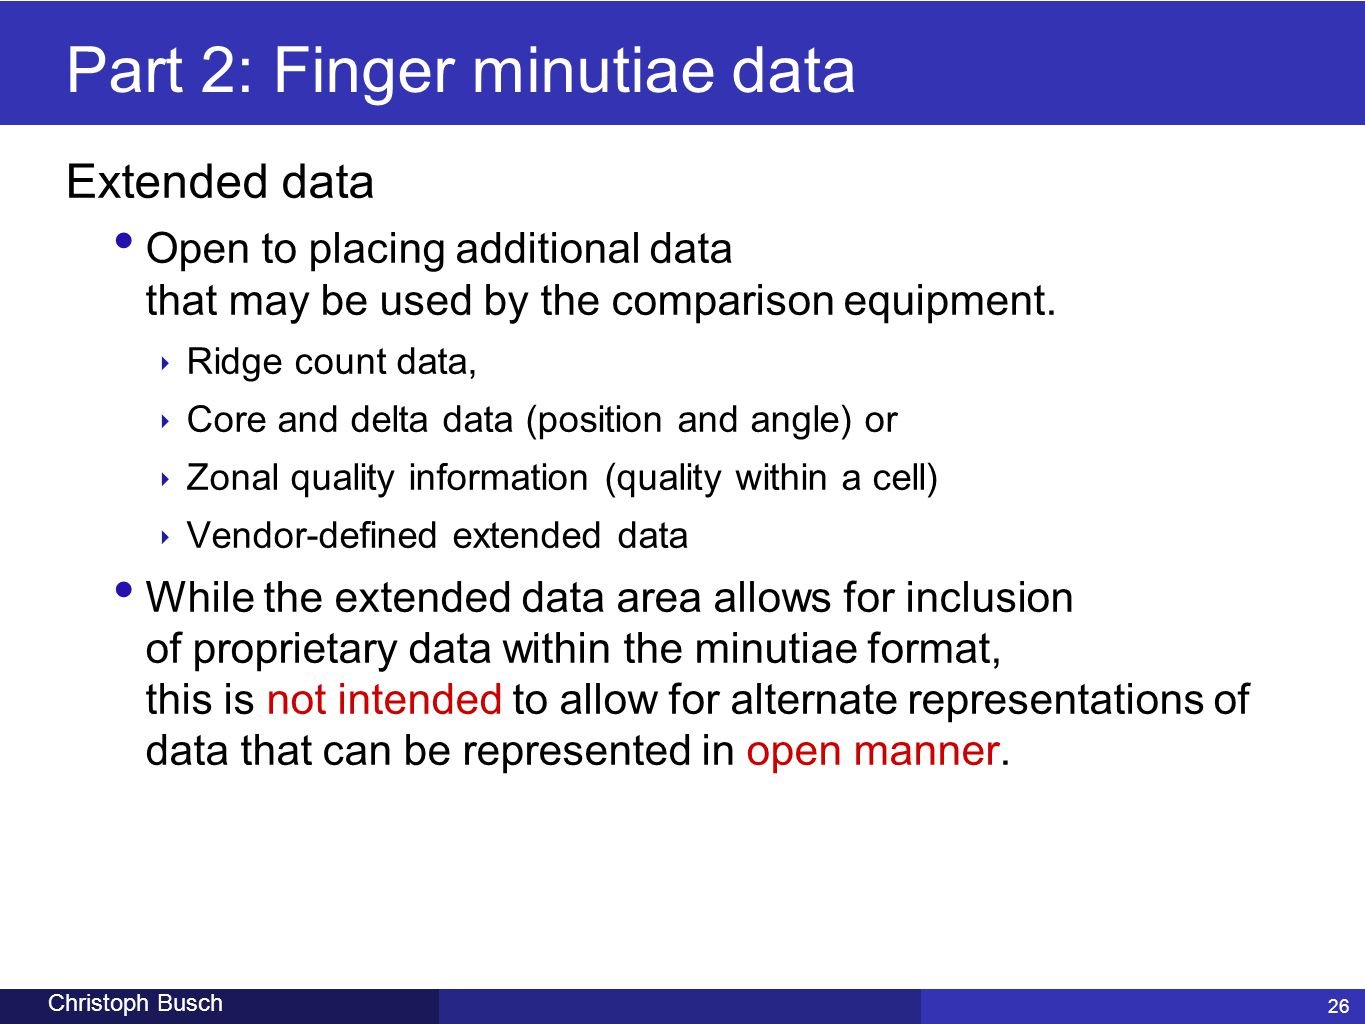 26 Christoph Busch Part 2: Finger minutiae data Extended data Open to placing additional data that may be used by the comparison equipment. ‣ Ridge co